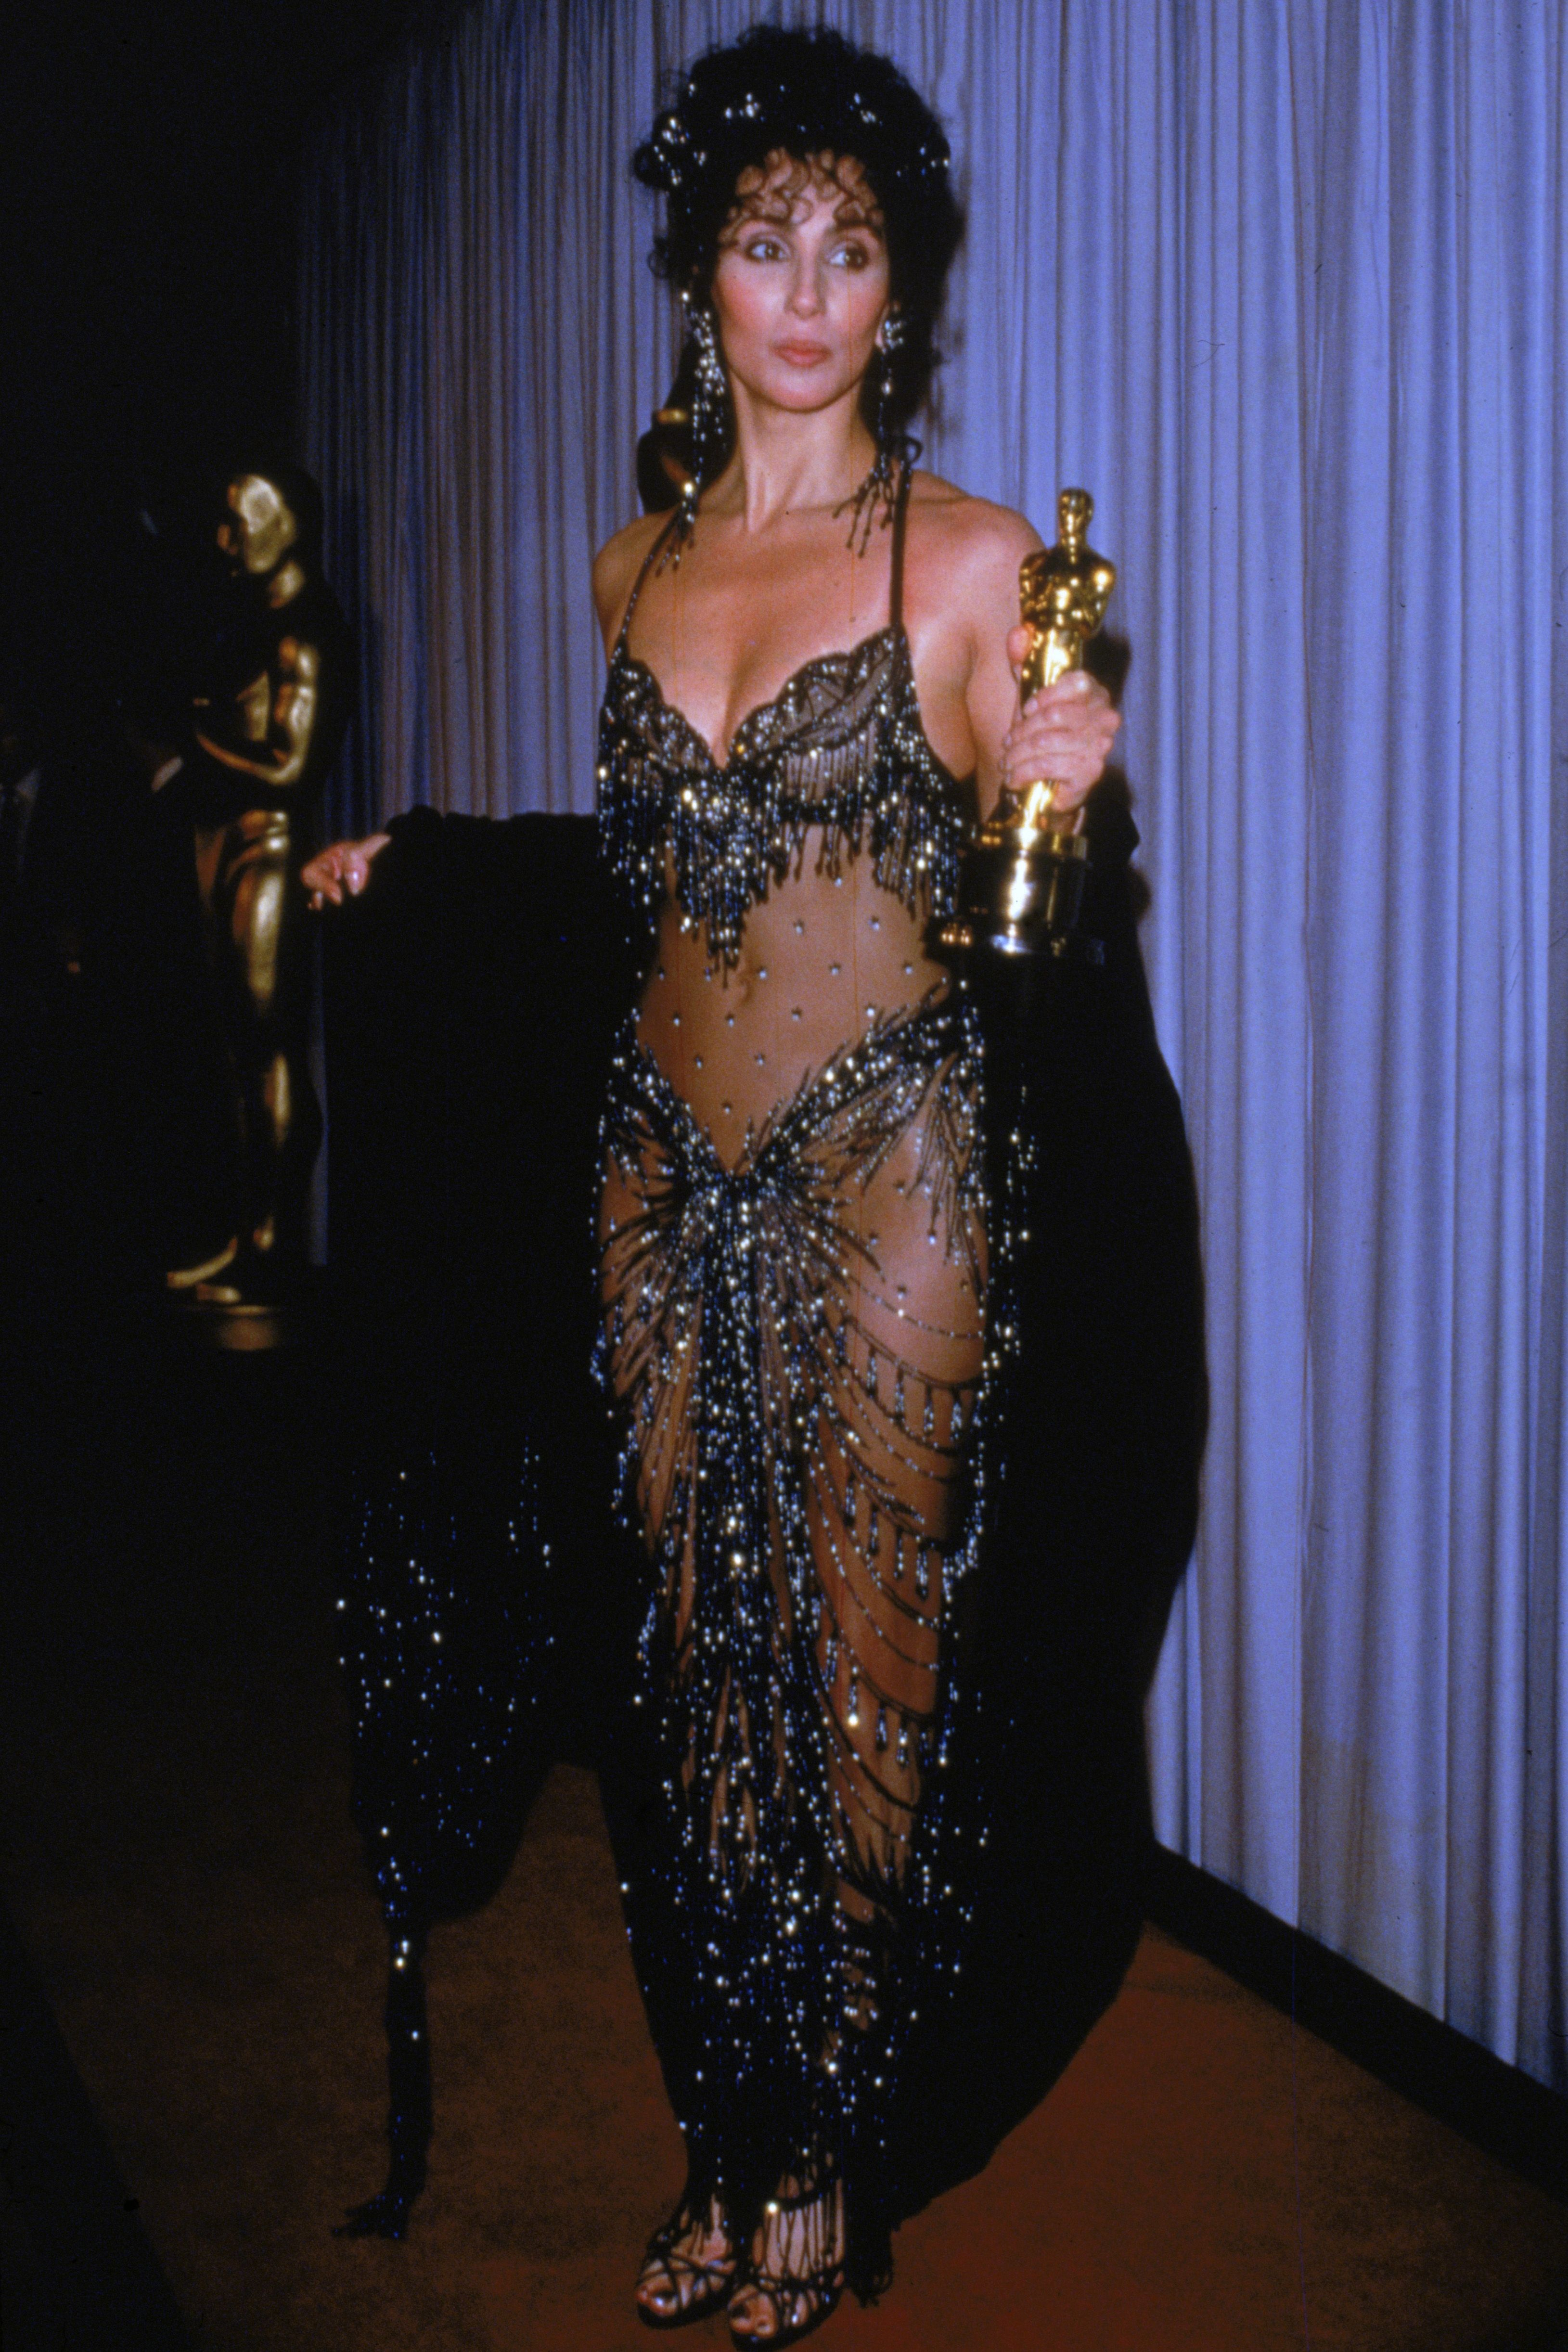 """<p>Cher picked up the Academy Award for Best Actress for her moving performance in <em data-verified=""""redactor"""" data-redactor-tag=""""em"""">Moonstruck</em><span class=""""redactor-invisible-space"""" data-verified=""""redactor"""" data-redactor-tag=""""span"""" data-redactor-class=""""redactor-invisible-space"""">, but it's</span>safe to say that the public was just as riveted by her choice of dress at the ceremony. A hybrid between a bra and a sarong,Cher's sheer Bob Mackie design exposed the entirety of her <a href=""""http://www.goodhousekeeping.com/health/diet-nutrition/a44341/what-cher-eats-in-a-day/"""" target=""""_blank"""" data-tracking-id=""""recirc-text-link"""">toned stomach and legs</a>, with a strategic clustering of rhinestones just below the navel.</p>"""